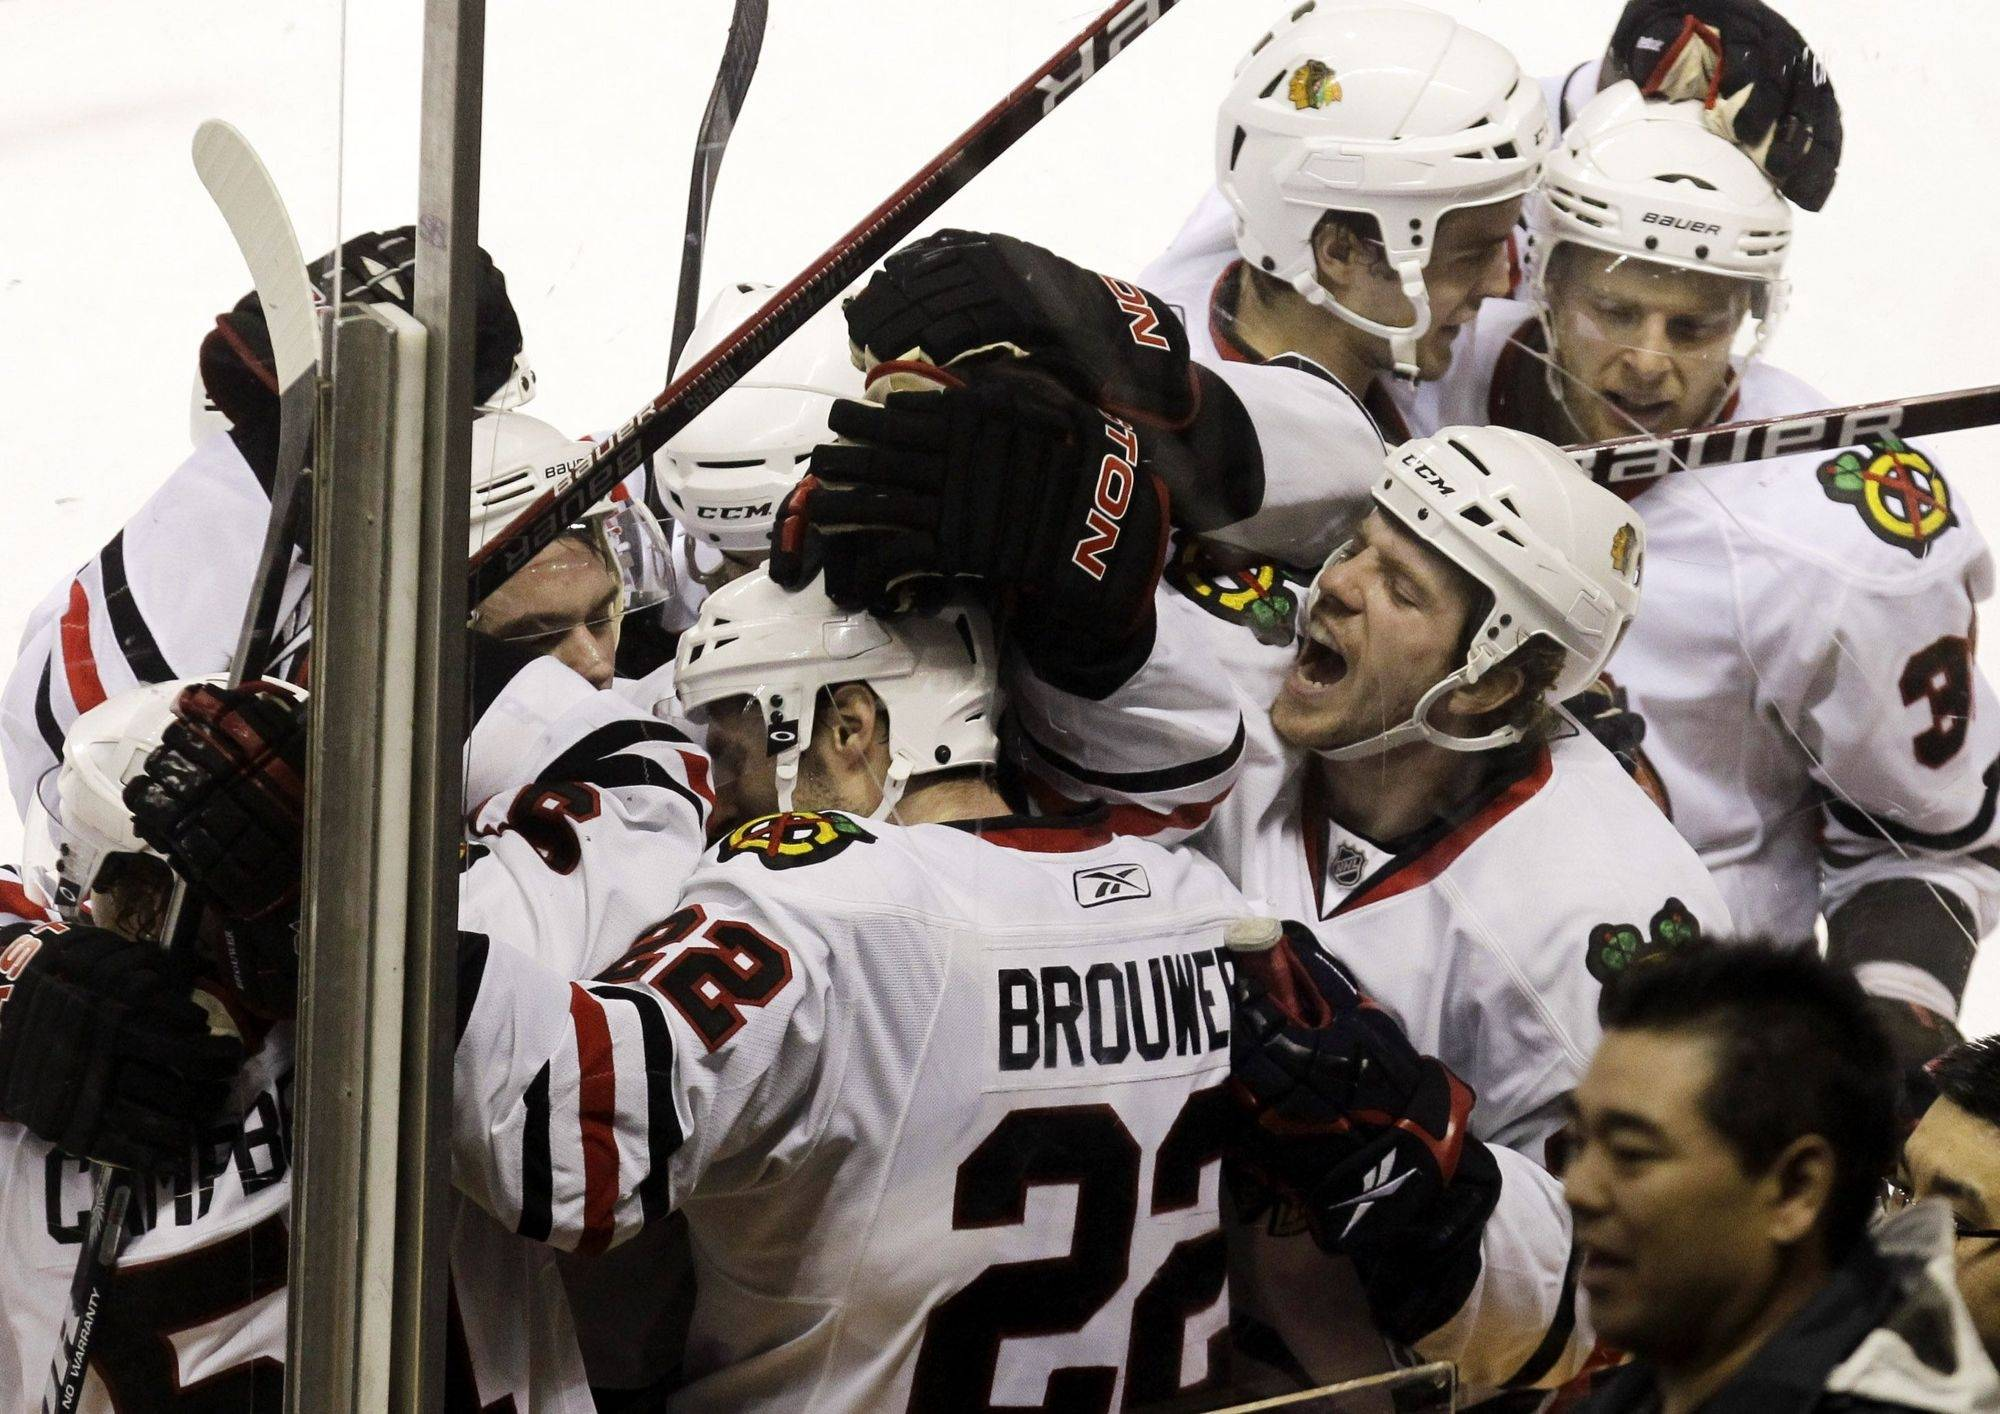 Troy Brouwer is mobbed by Blackhawks teammates after scoring in overtime to beat the Sharks 4-3 on Thursday night.